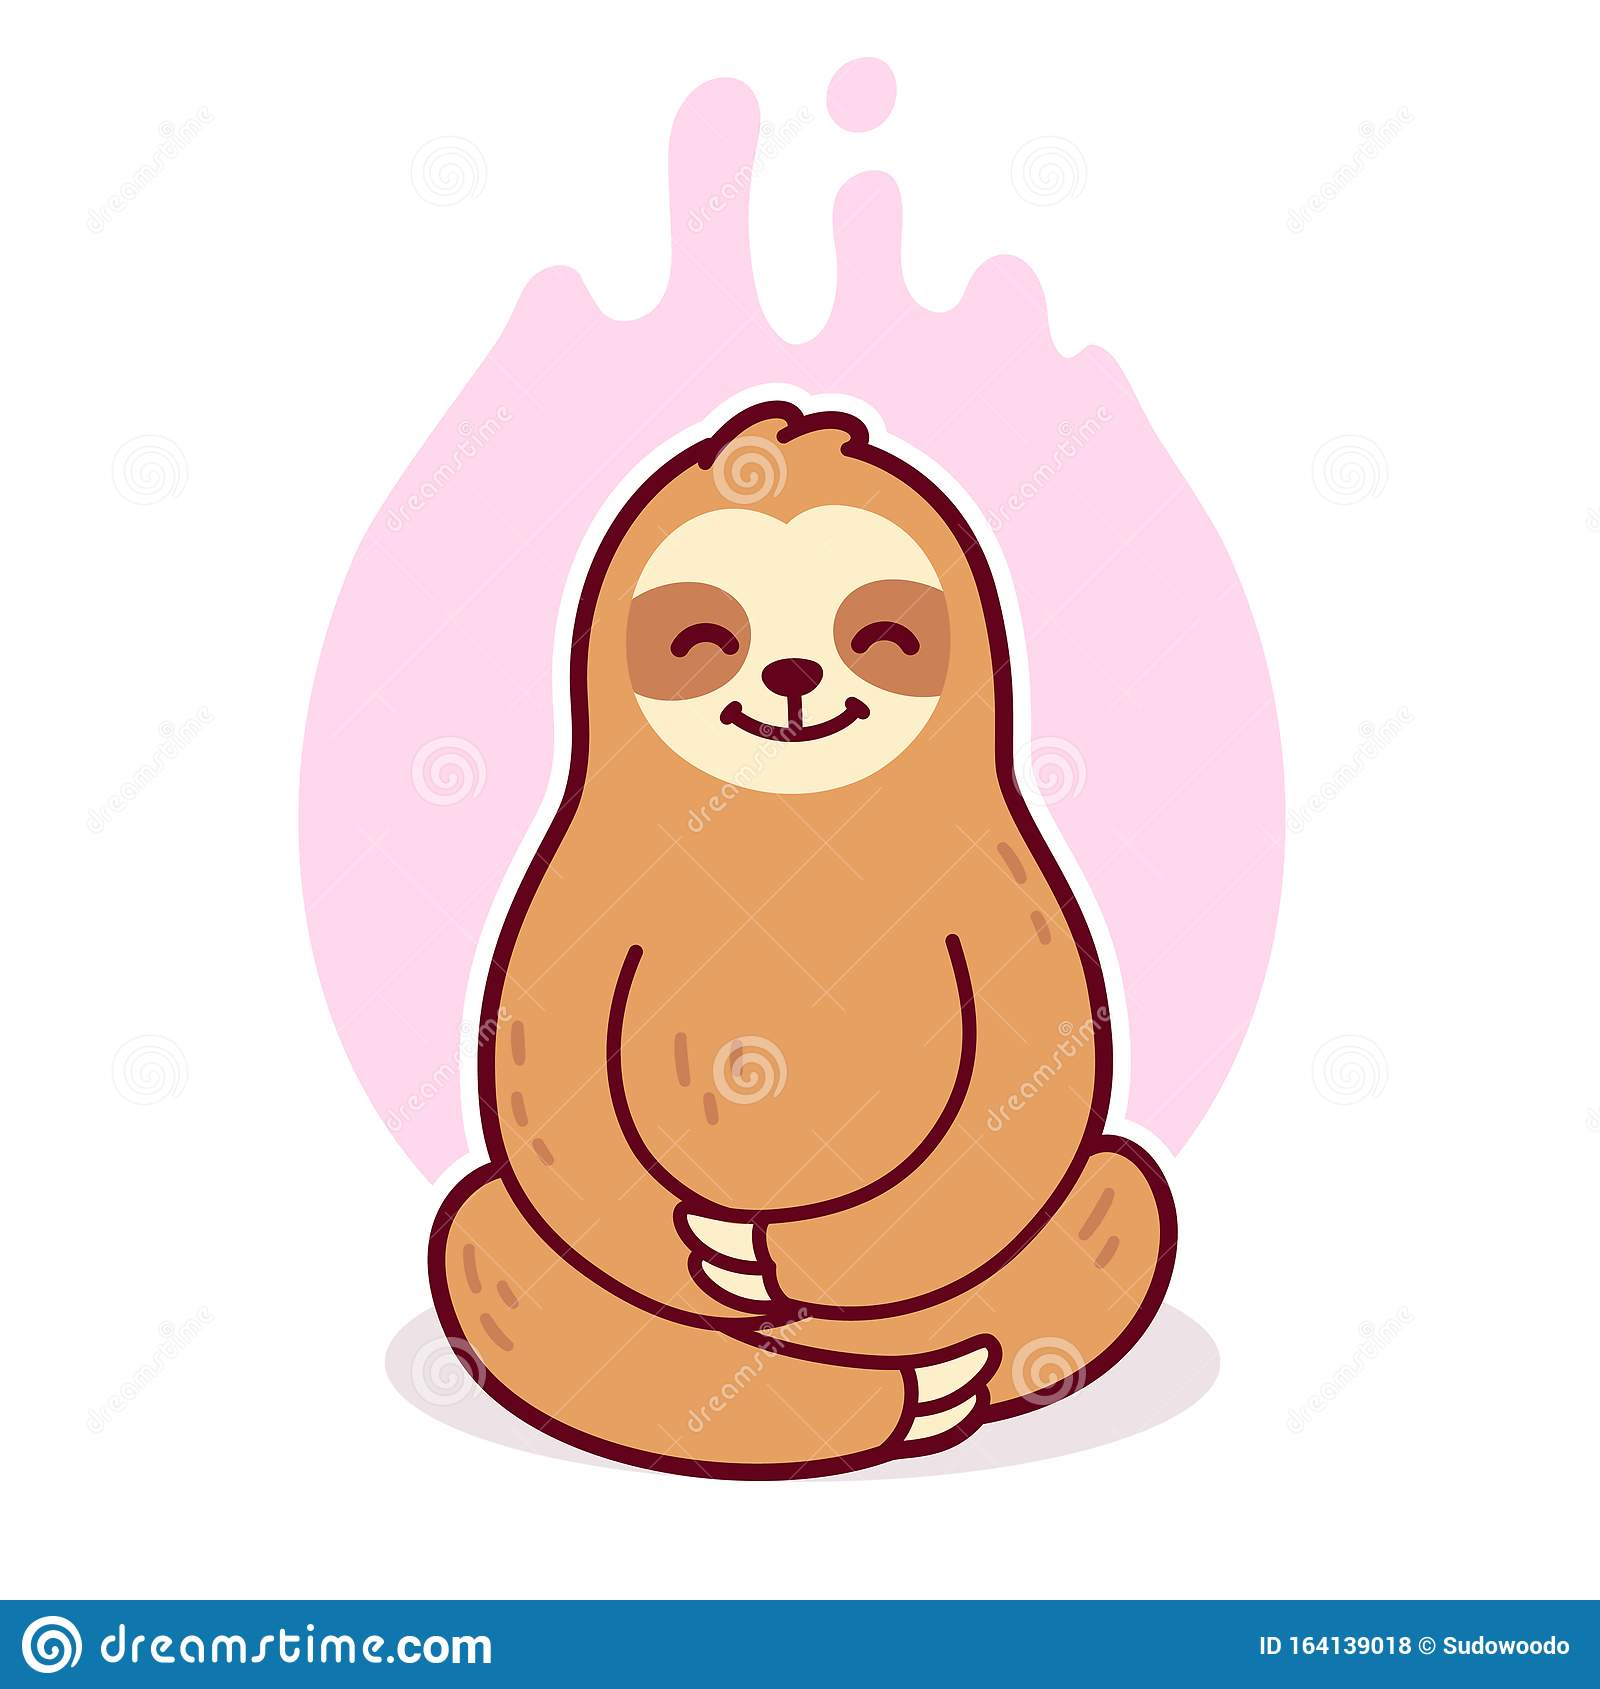 Cute Cartoon Meditating Sloth Stock Vector Illustration Of Minimal Peaceful 164139018